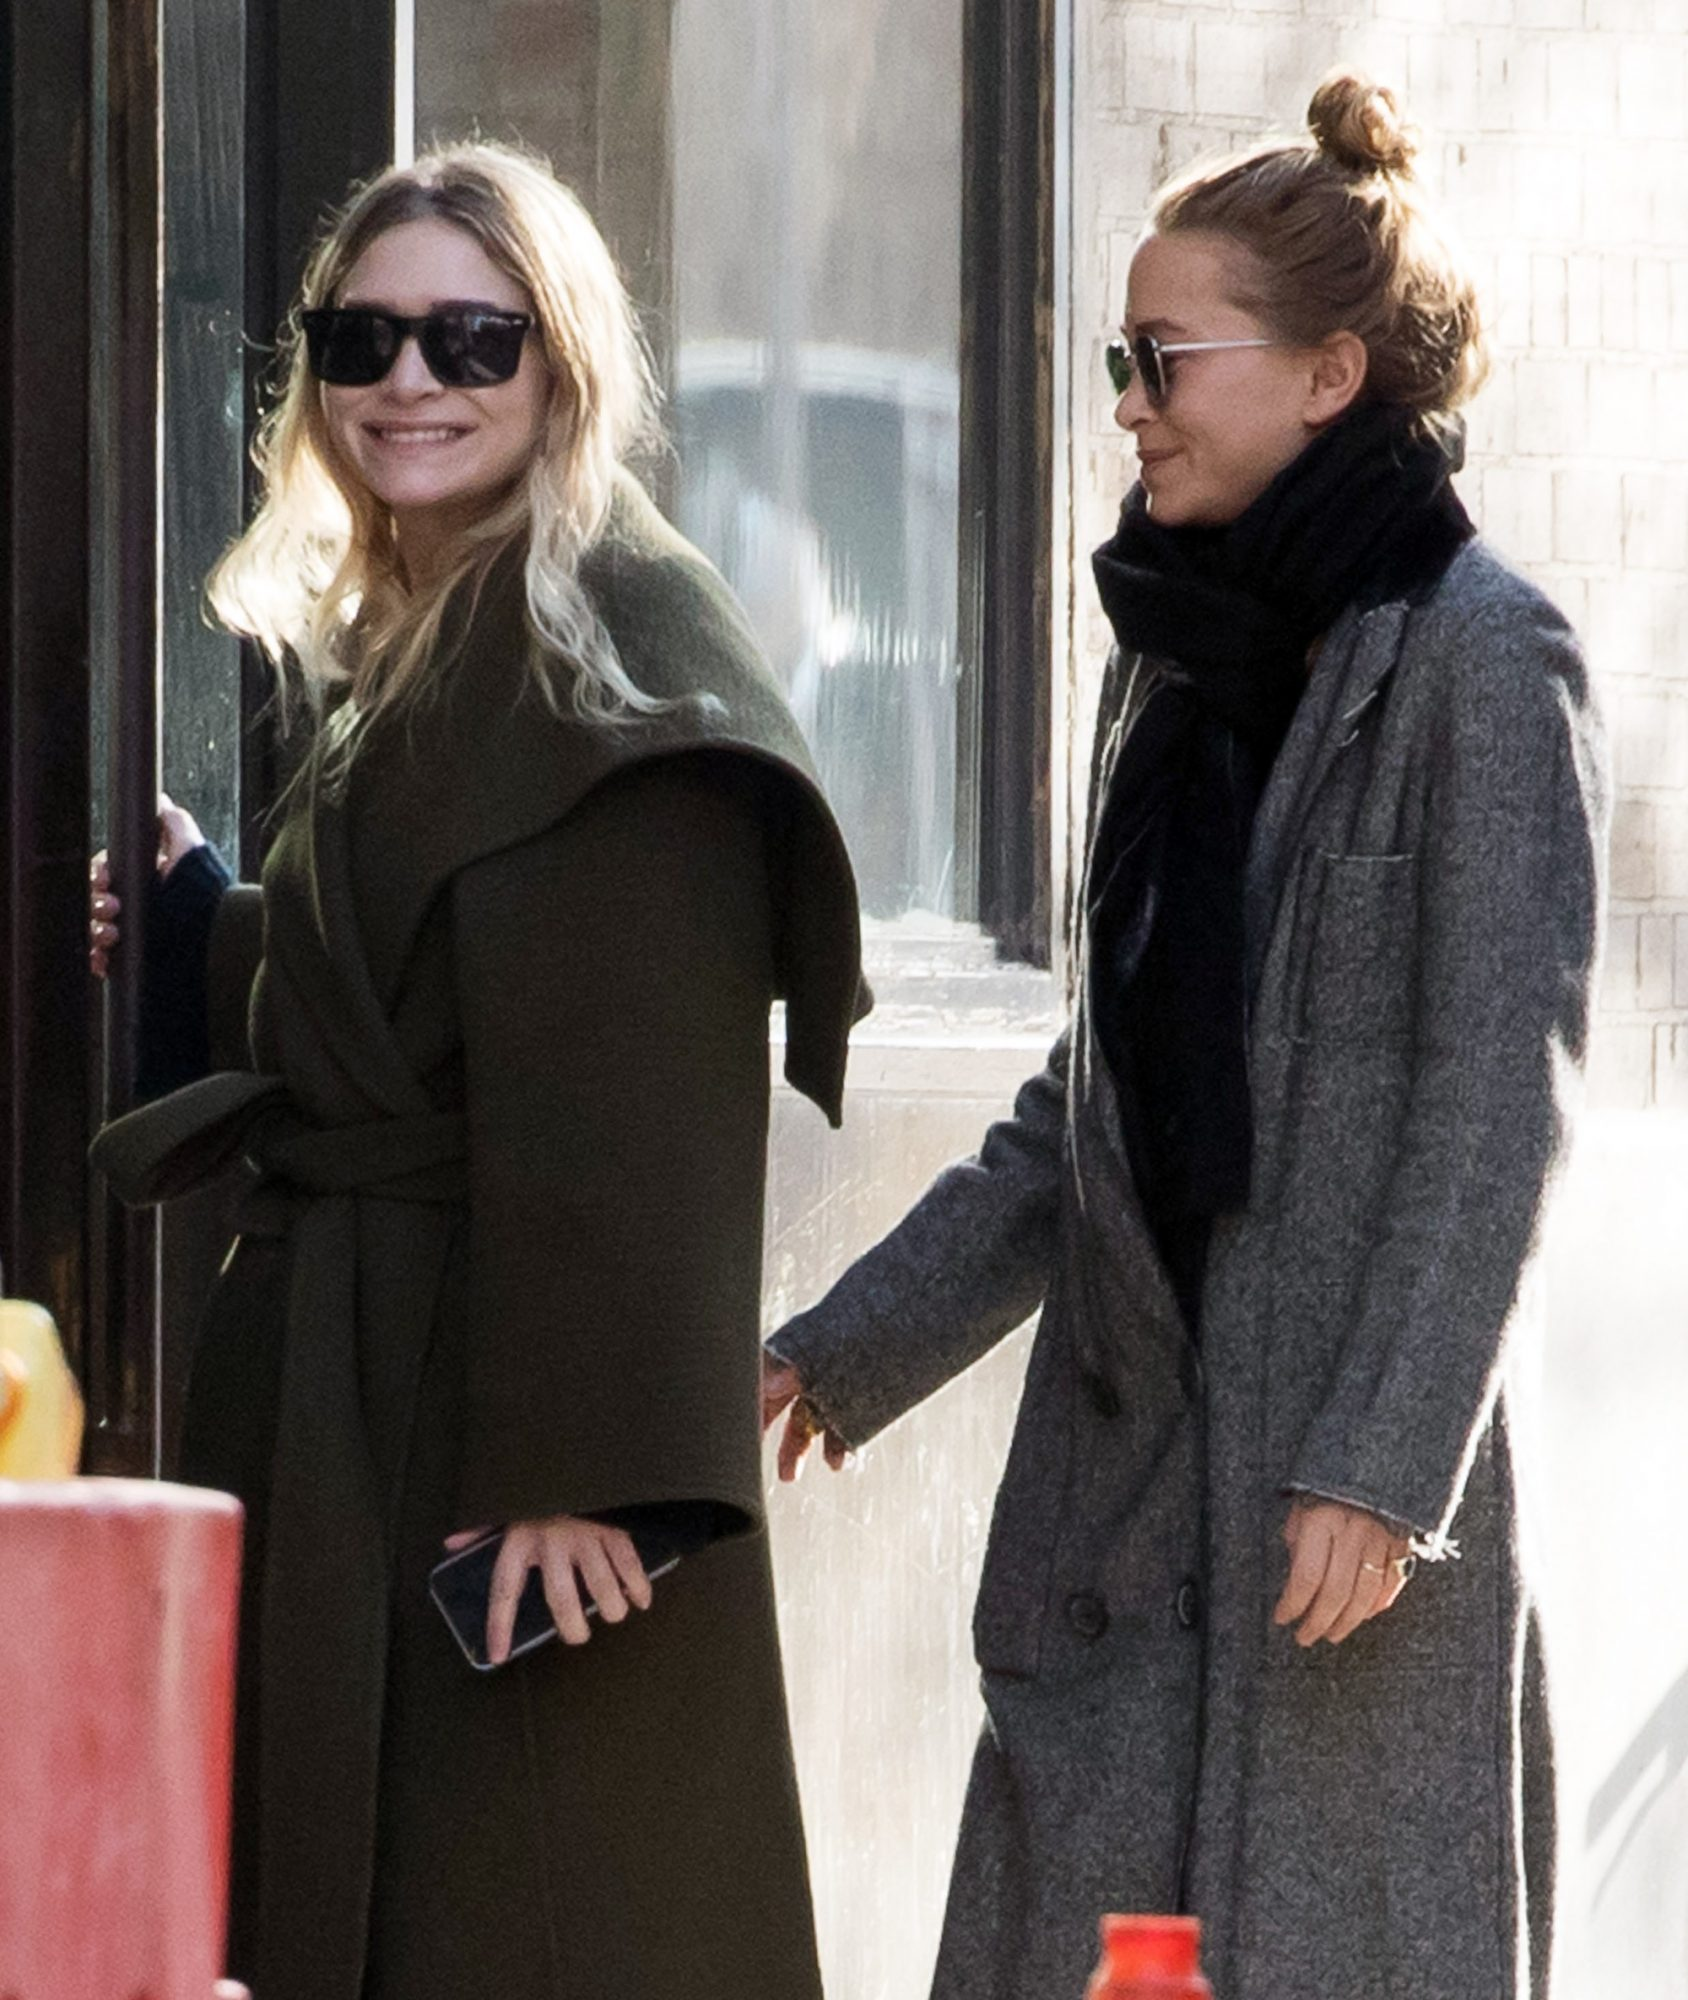 EXCLUSIVE: Mary-Kate Olsen and Ashley Olsen seen smiling after having a cigarette break outside there office in New York.